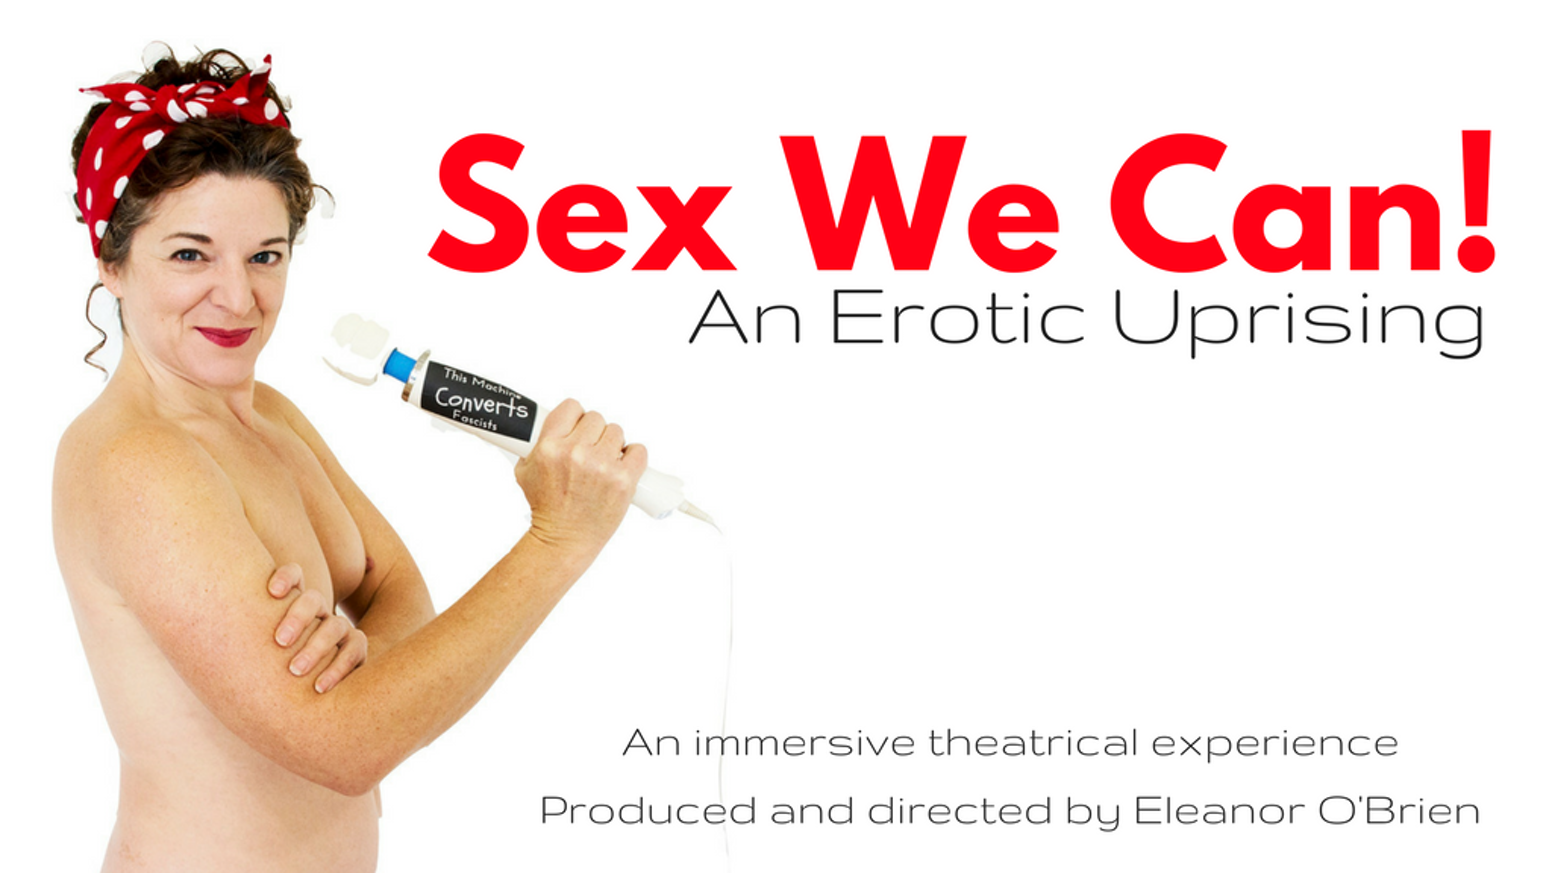 Sex We Can! An Erotic Uprising